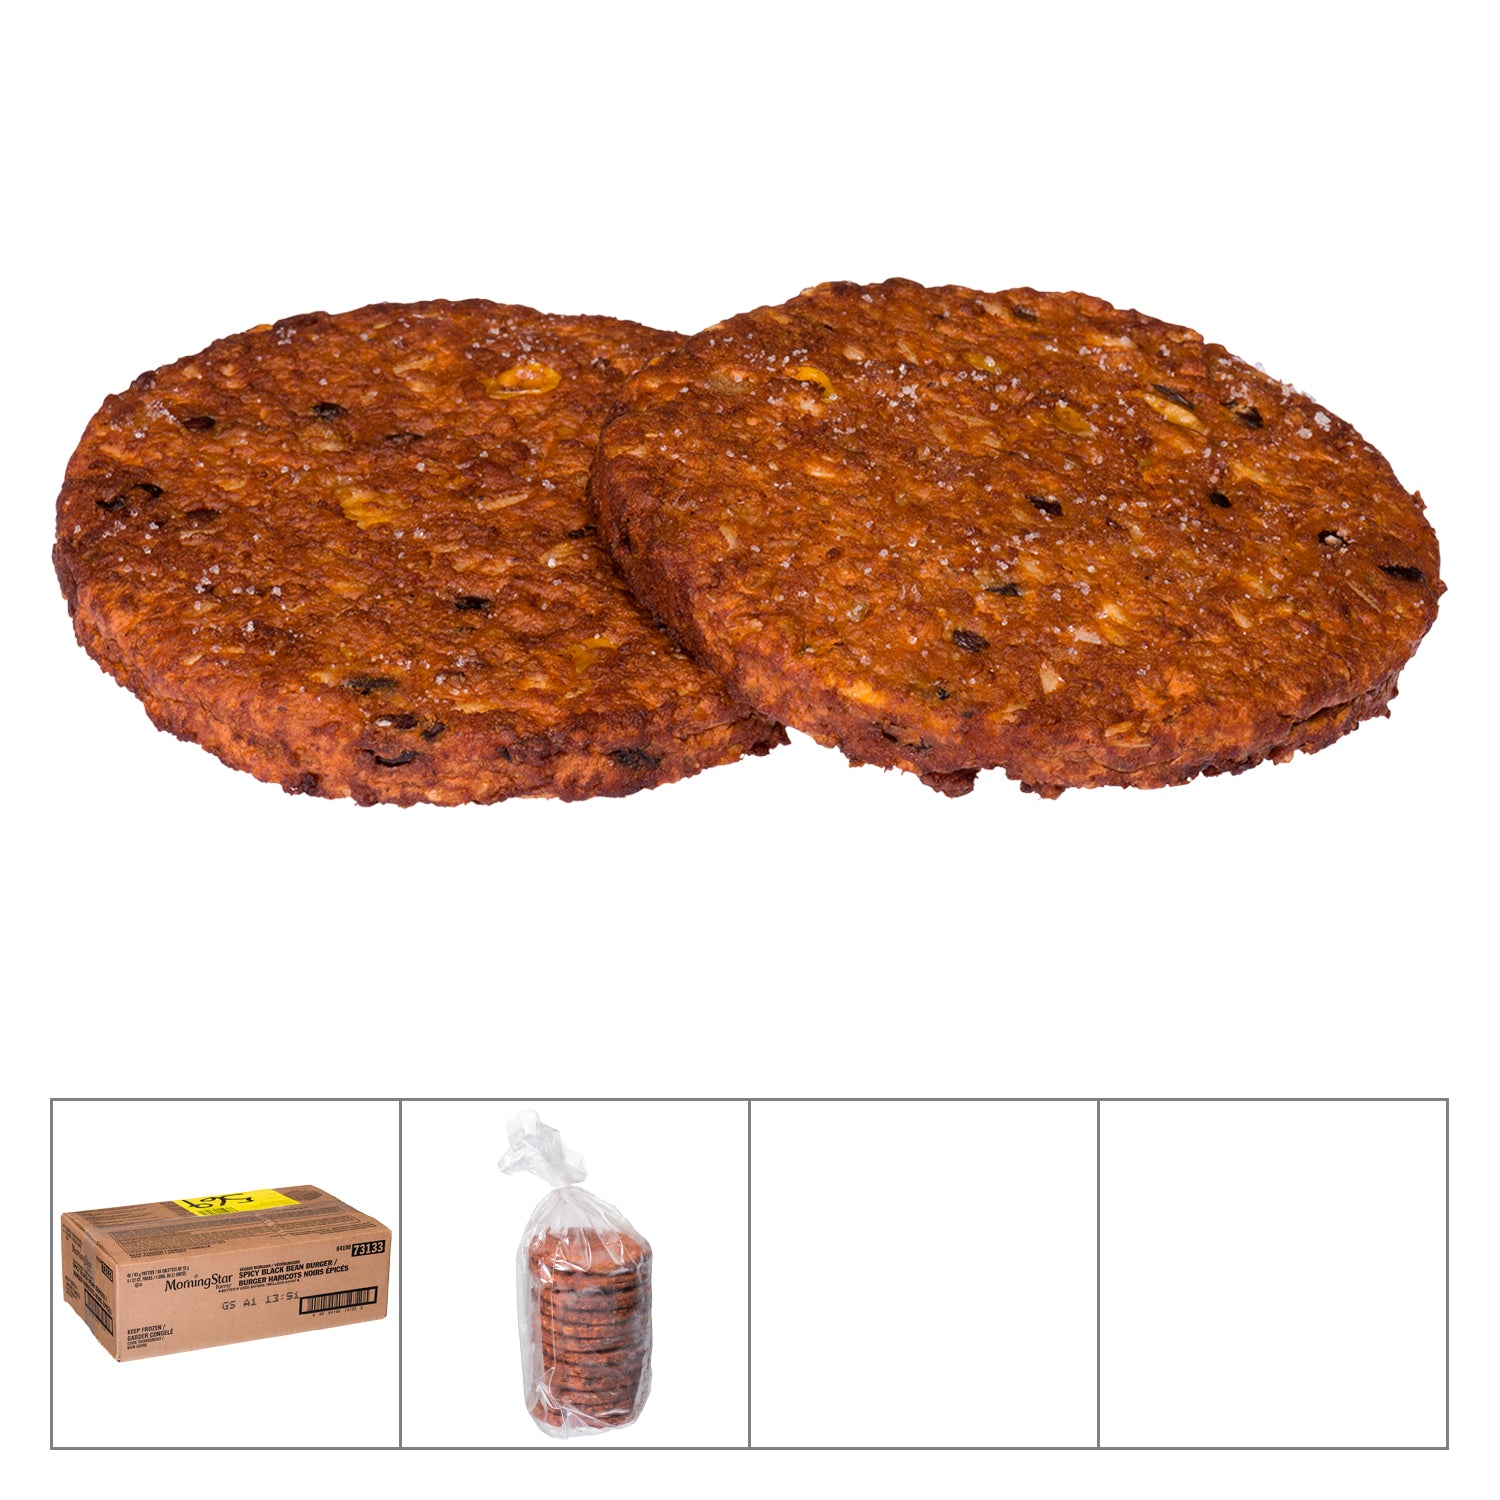 Morningstar Farm Frozen Spicy Black Bean Vegetarian Burger 93 g - 48 Pack [$1.34/each]